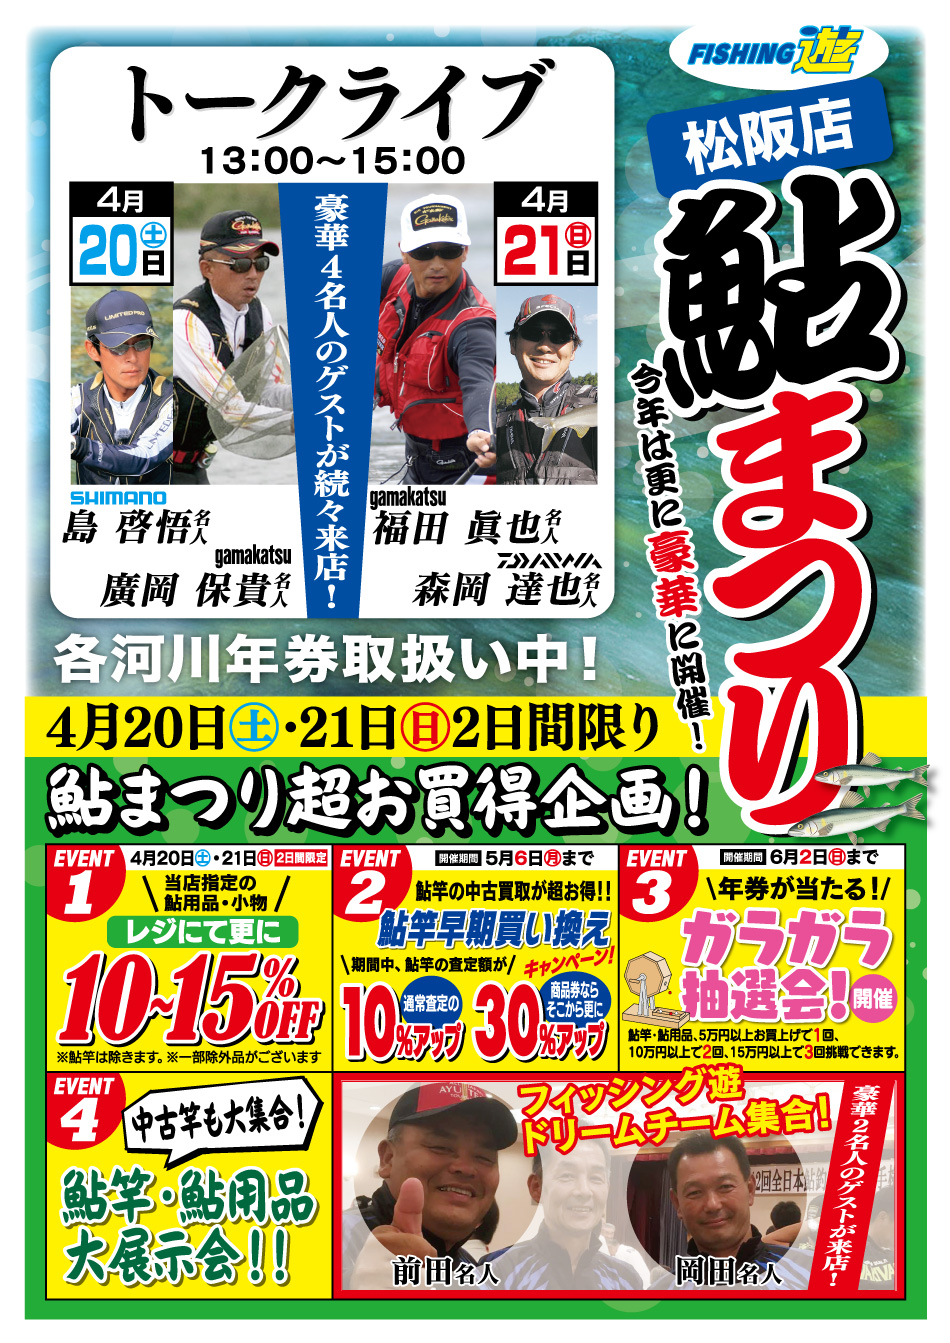 <a href=&quot;http://fishing-you.com/event/190420_21ayu&quot;>松阪店 鮎まつり</a>